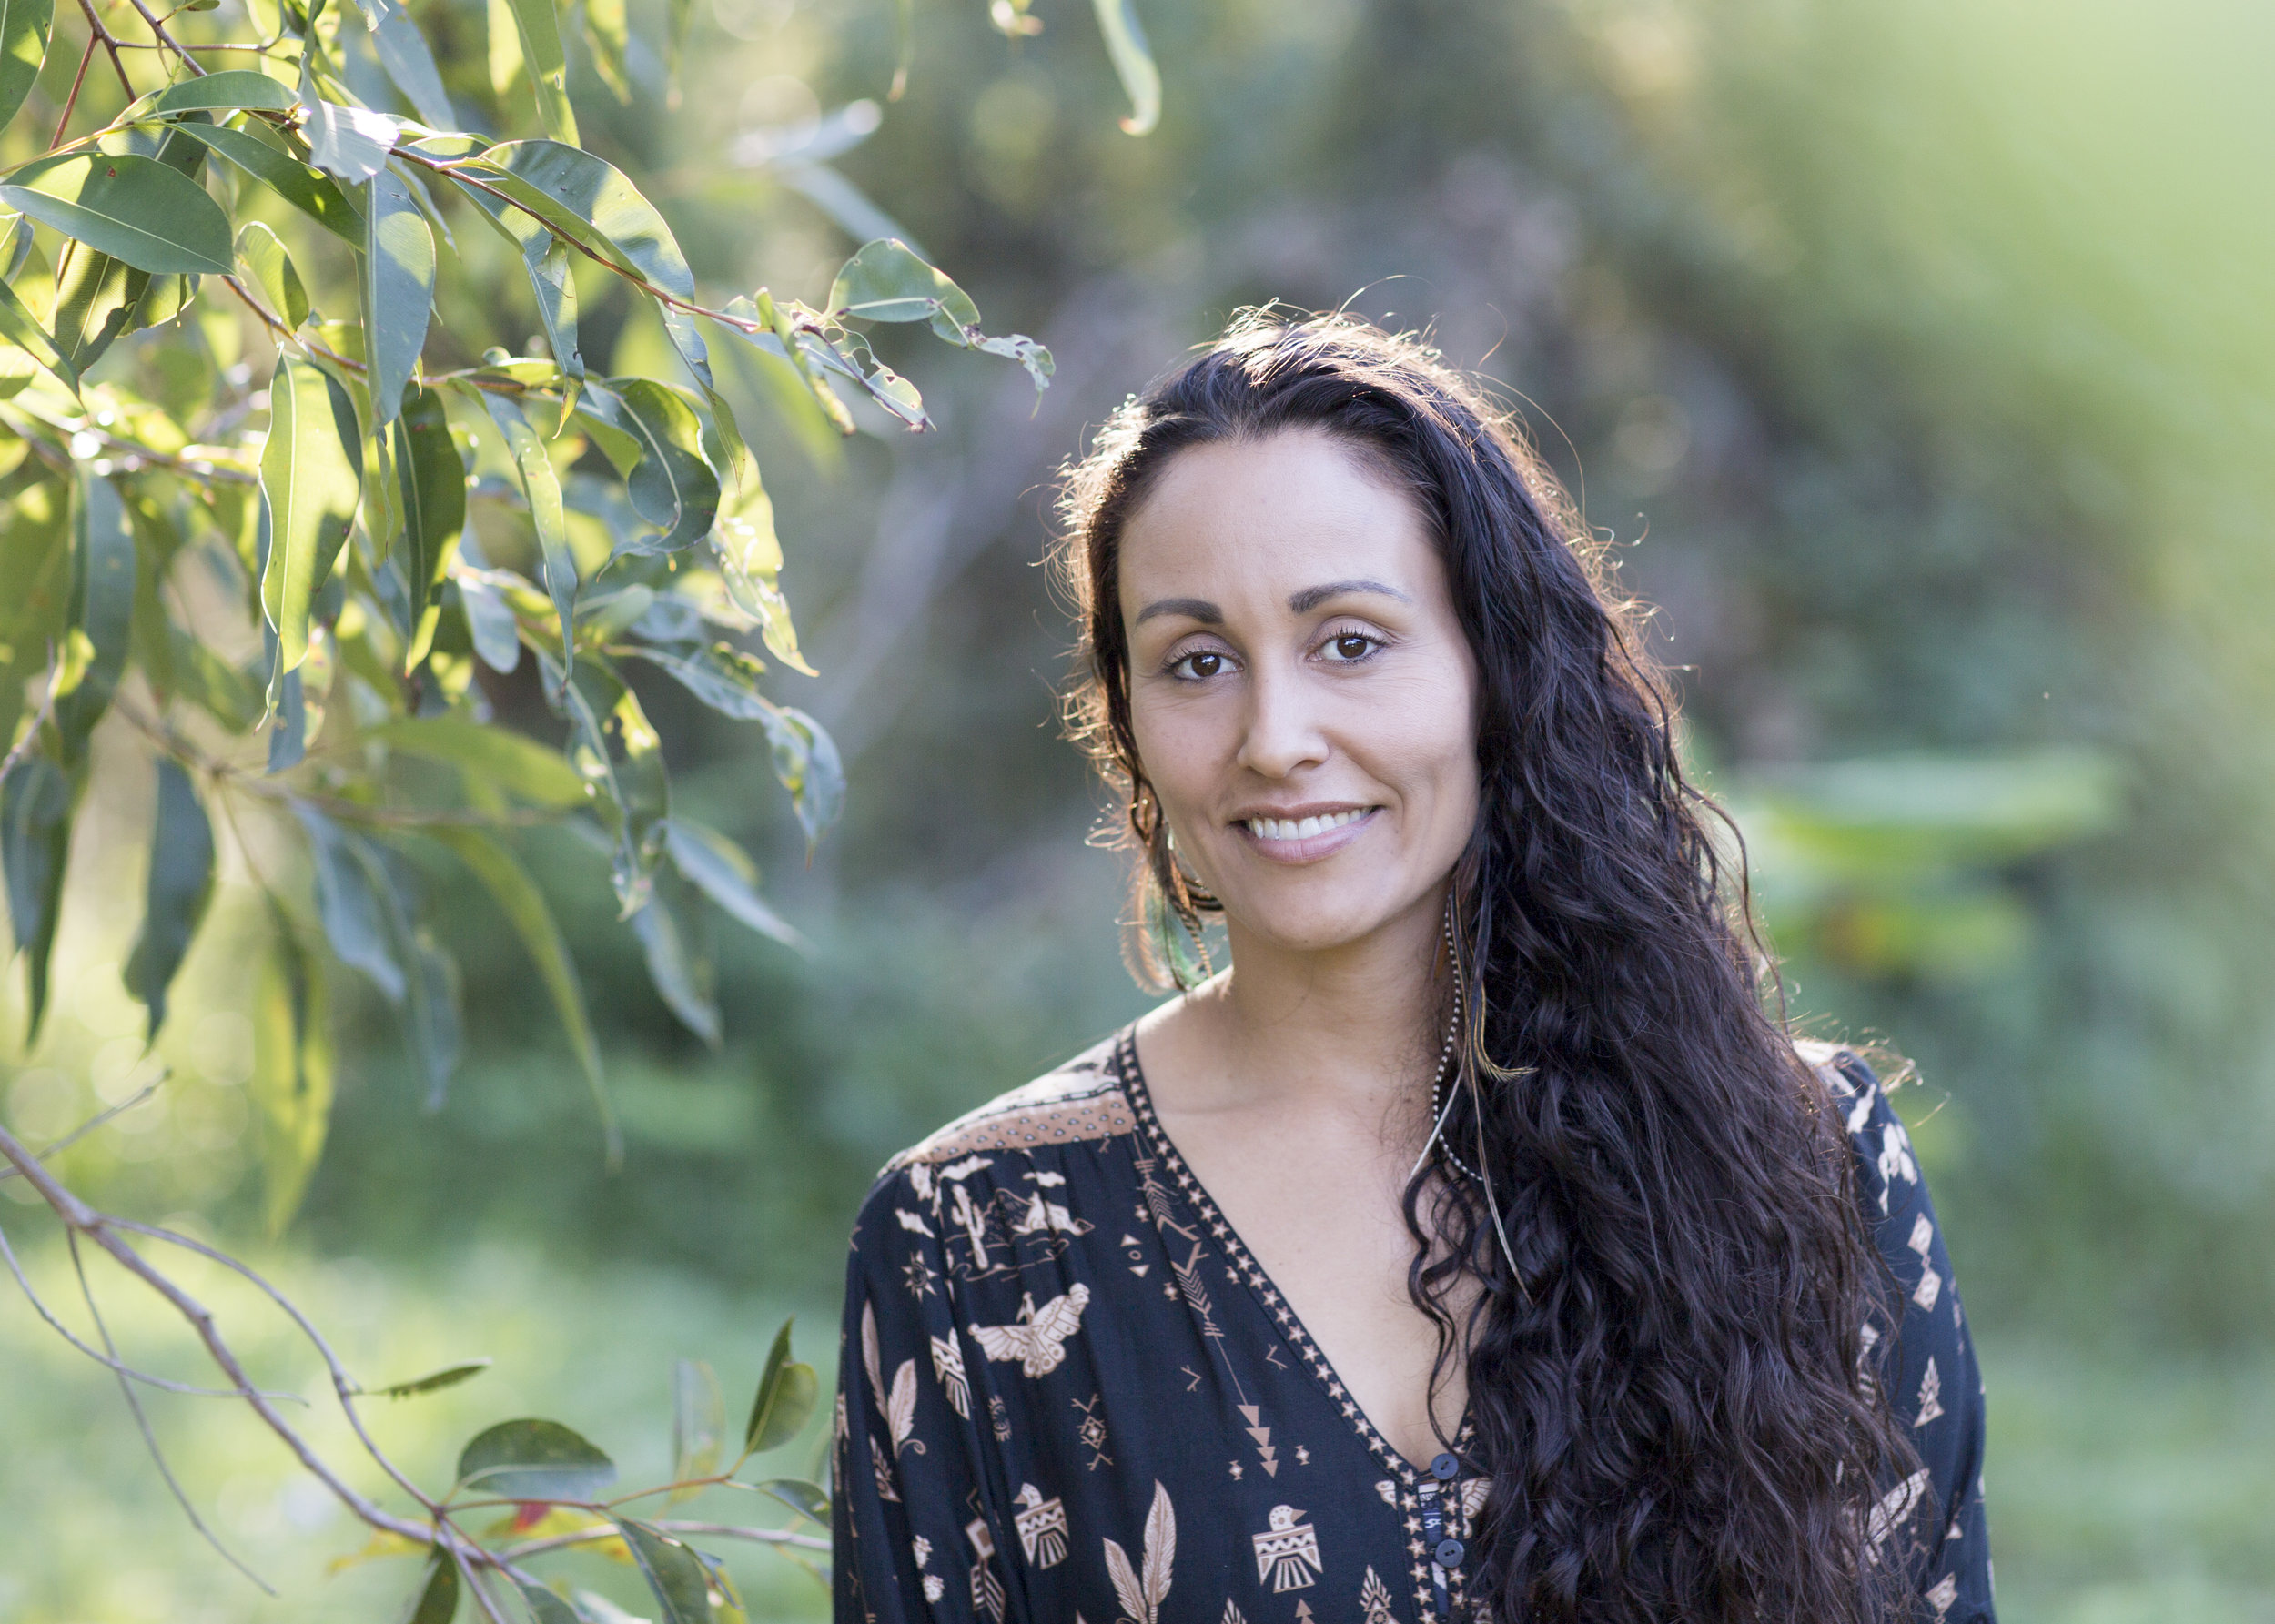 "Sarah Parsons - - Raw food Plant-Based Chef- IIN Health Coach- Yoga Instructor- Reiki Healer- Whole Foods - Plant Based -Vegan Advocate.Sarah and her Husband Ben opened New Earth Cafe in Coolum Beach 4 years ago, offering a 100% organic, whole-foods, Gluten - free, Dairy - free, Sugar - free, plant- based breakfasts, lunches, smoothies, cold pressed juices and delicious treats to the sunshine coast community.She also hosts raw nights every month and caters private events, retreats and functions. She teaches regular raw cooking classes, juicing & detox classes and health coaches on a weekly basis.""Food is our medicine, and we definitely are what we eat and what we are able to absorb, I create delicious home made food that nourishes your body, mind and soul and allows you to reach your highest potential and be the best version of yourself that you can be!""NEW EARTH CAFEShop 7 Birtwill Street, Coolum Beach QLD 4573Sarah: +61(0) 408279150Ben: +61(0) 439 850 980Email: newearthcafe@hotmail.com"